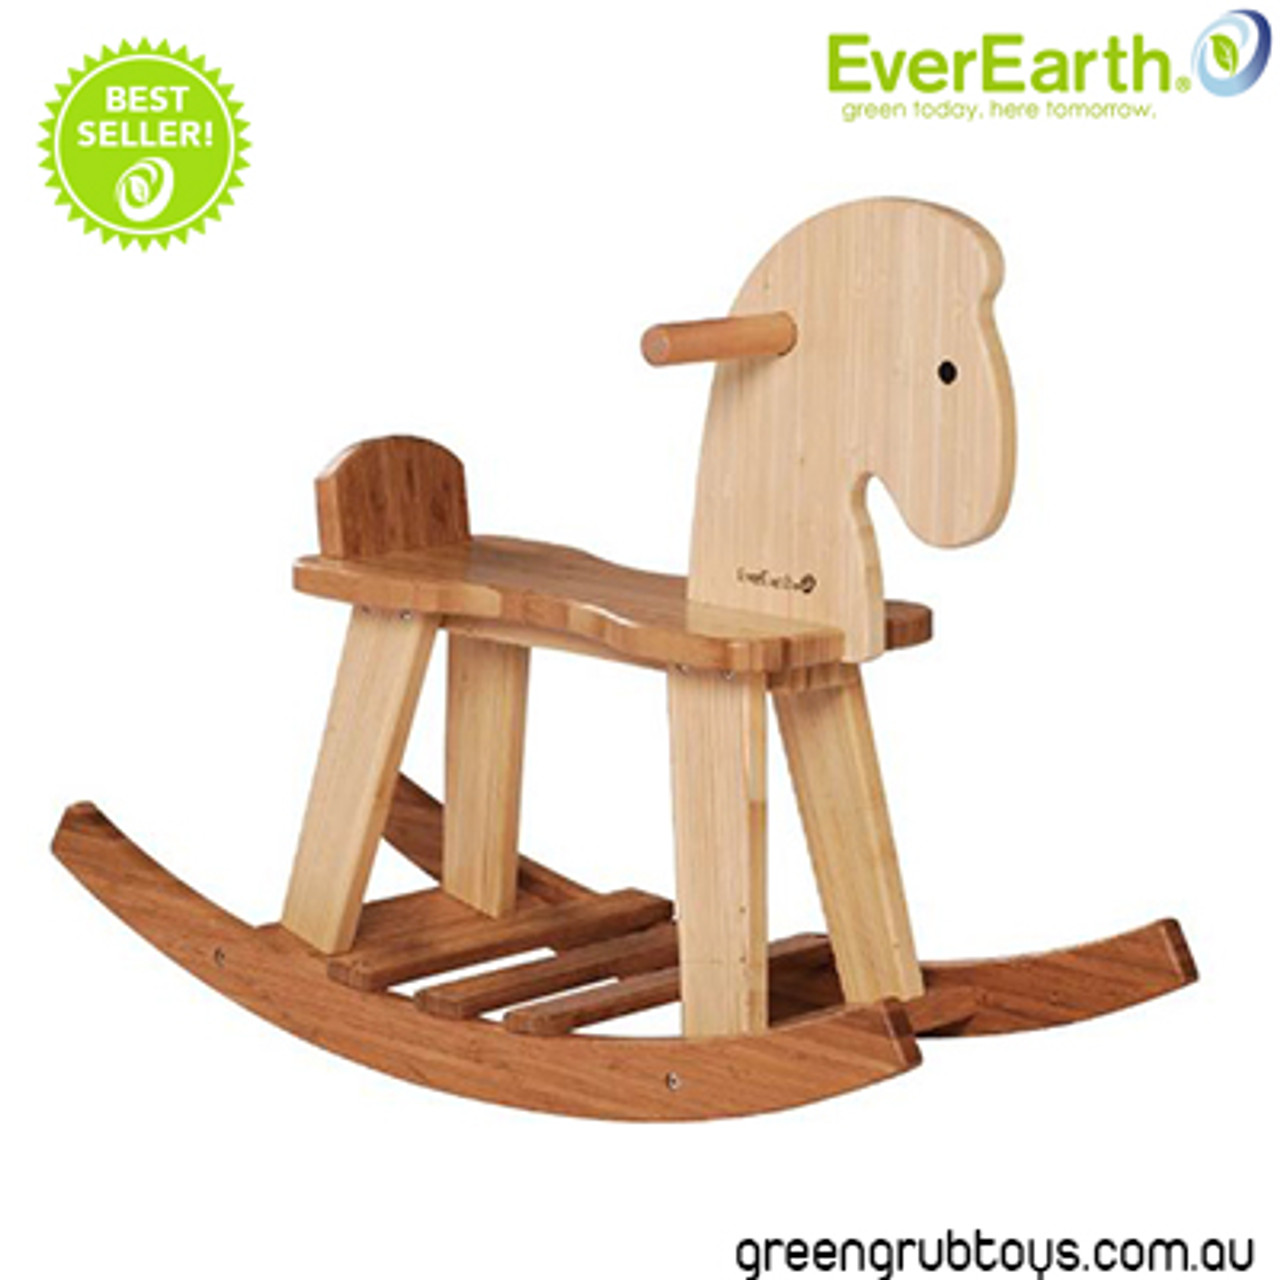 Everearth Wooden Rocking Horse Fast Shipping Eco Friendly Bamboo Toy